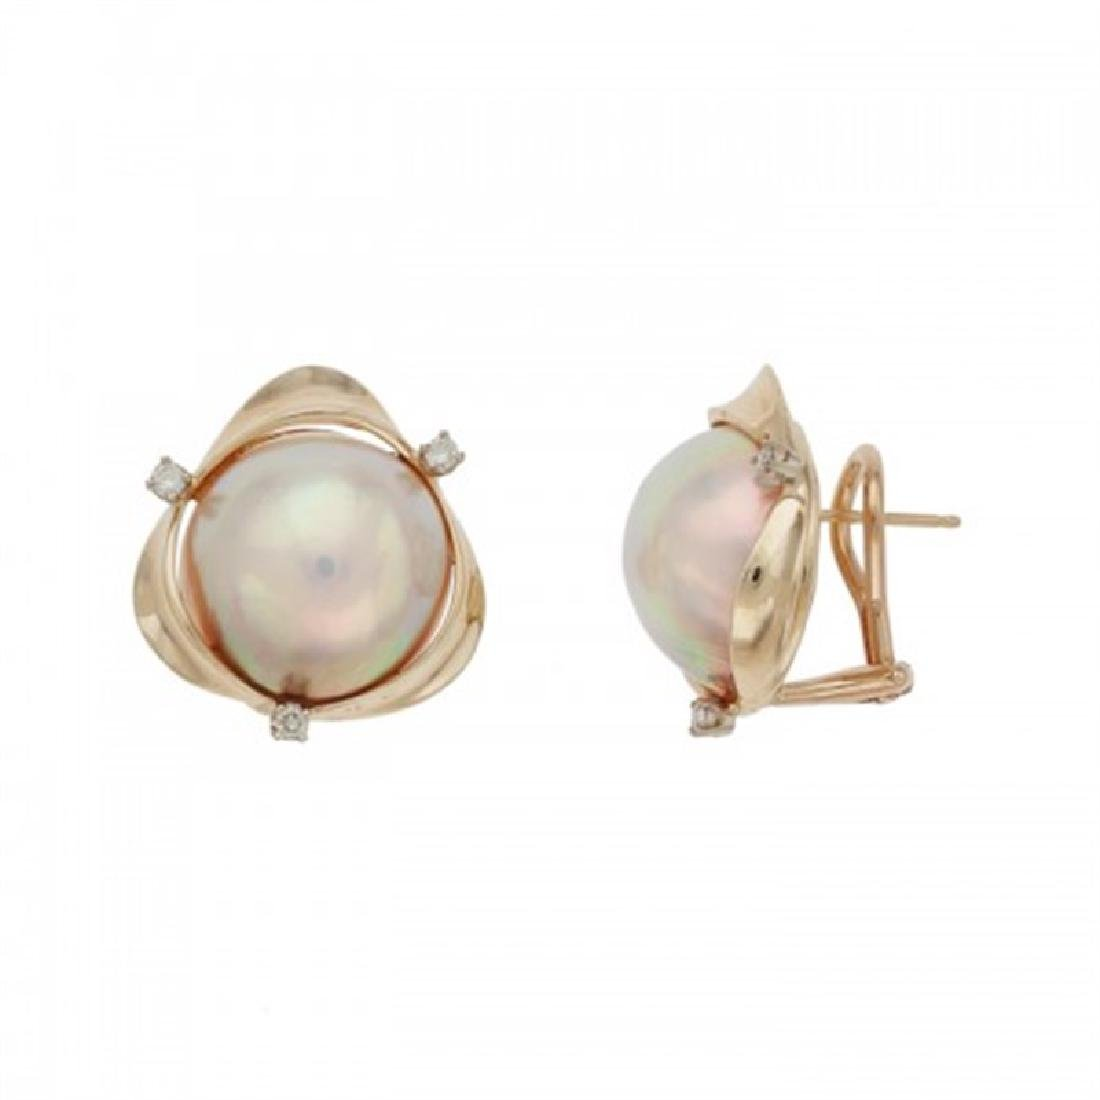 15.0-15.5mm Mabe Pearl Earrings with Diamond